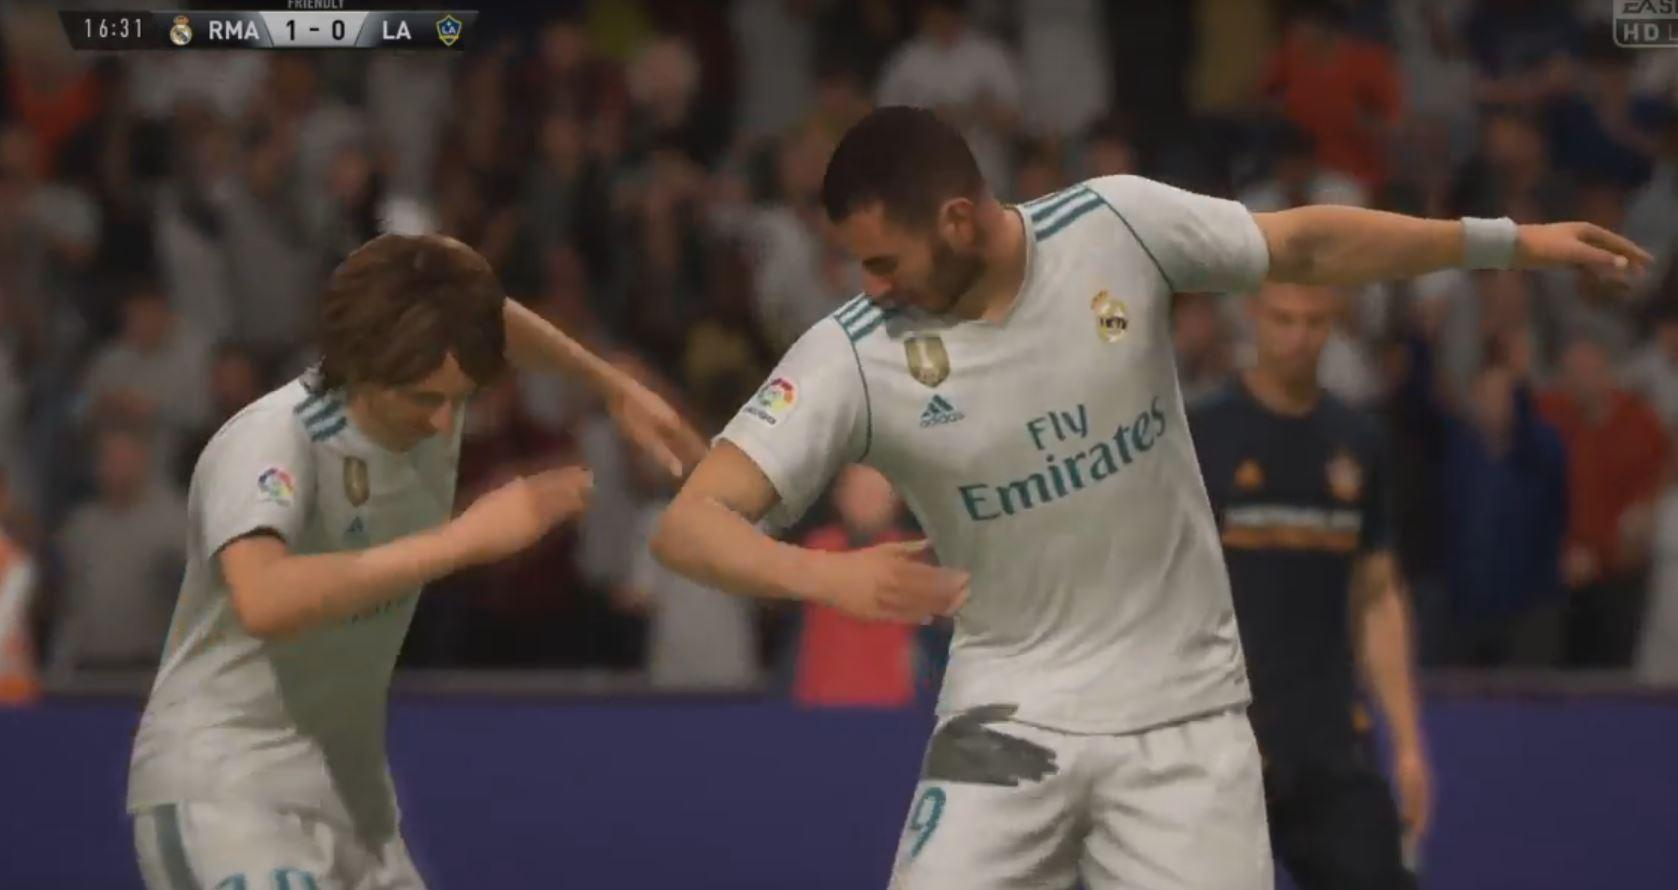 Another player now joins in on the dabbing action post scoring